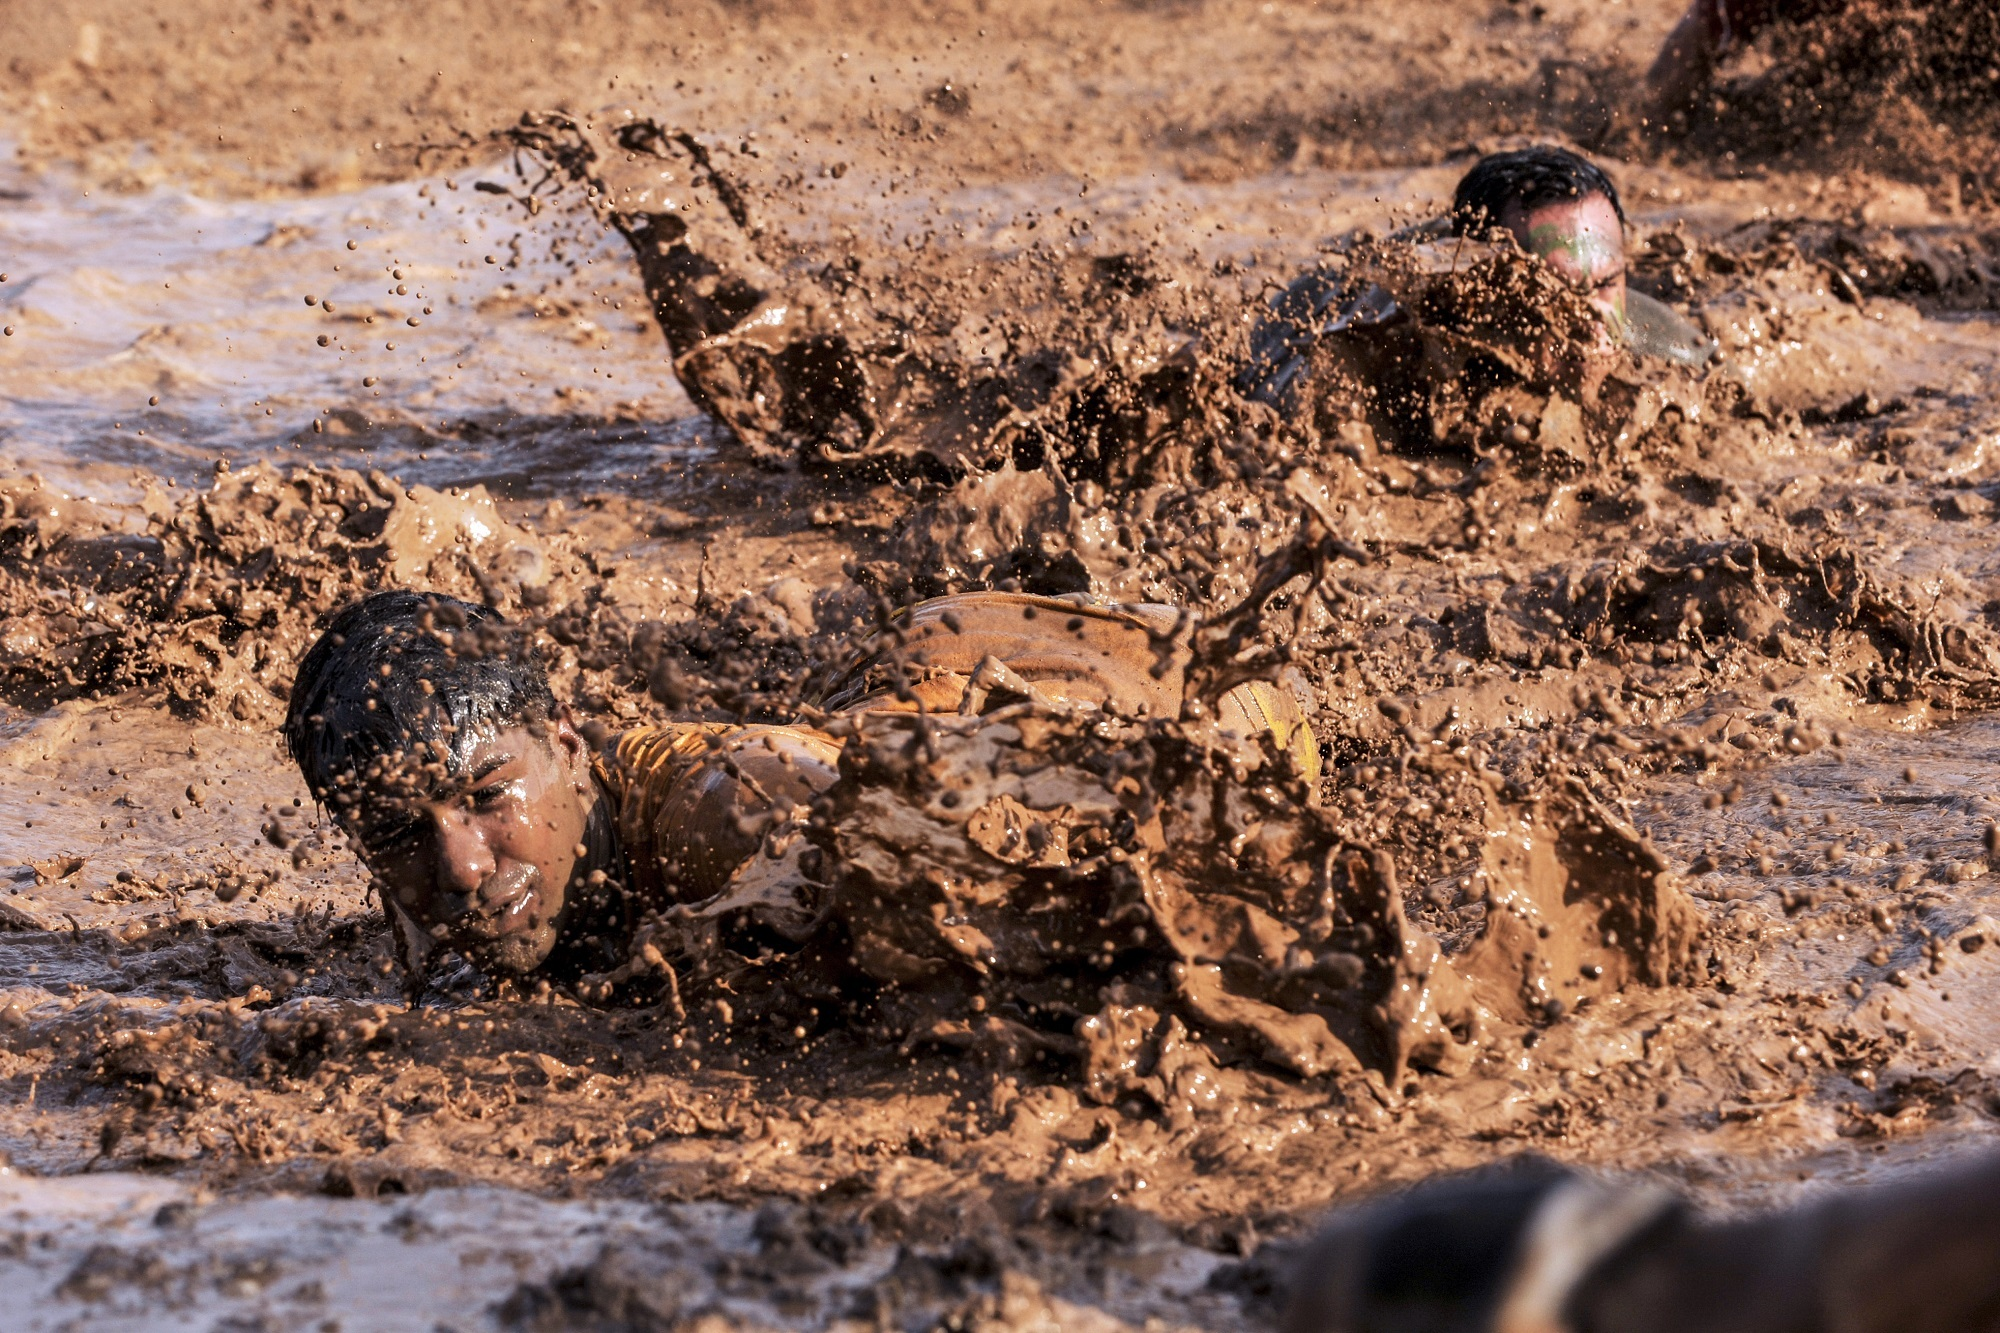 Soldiers in the mud photo